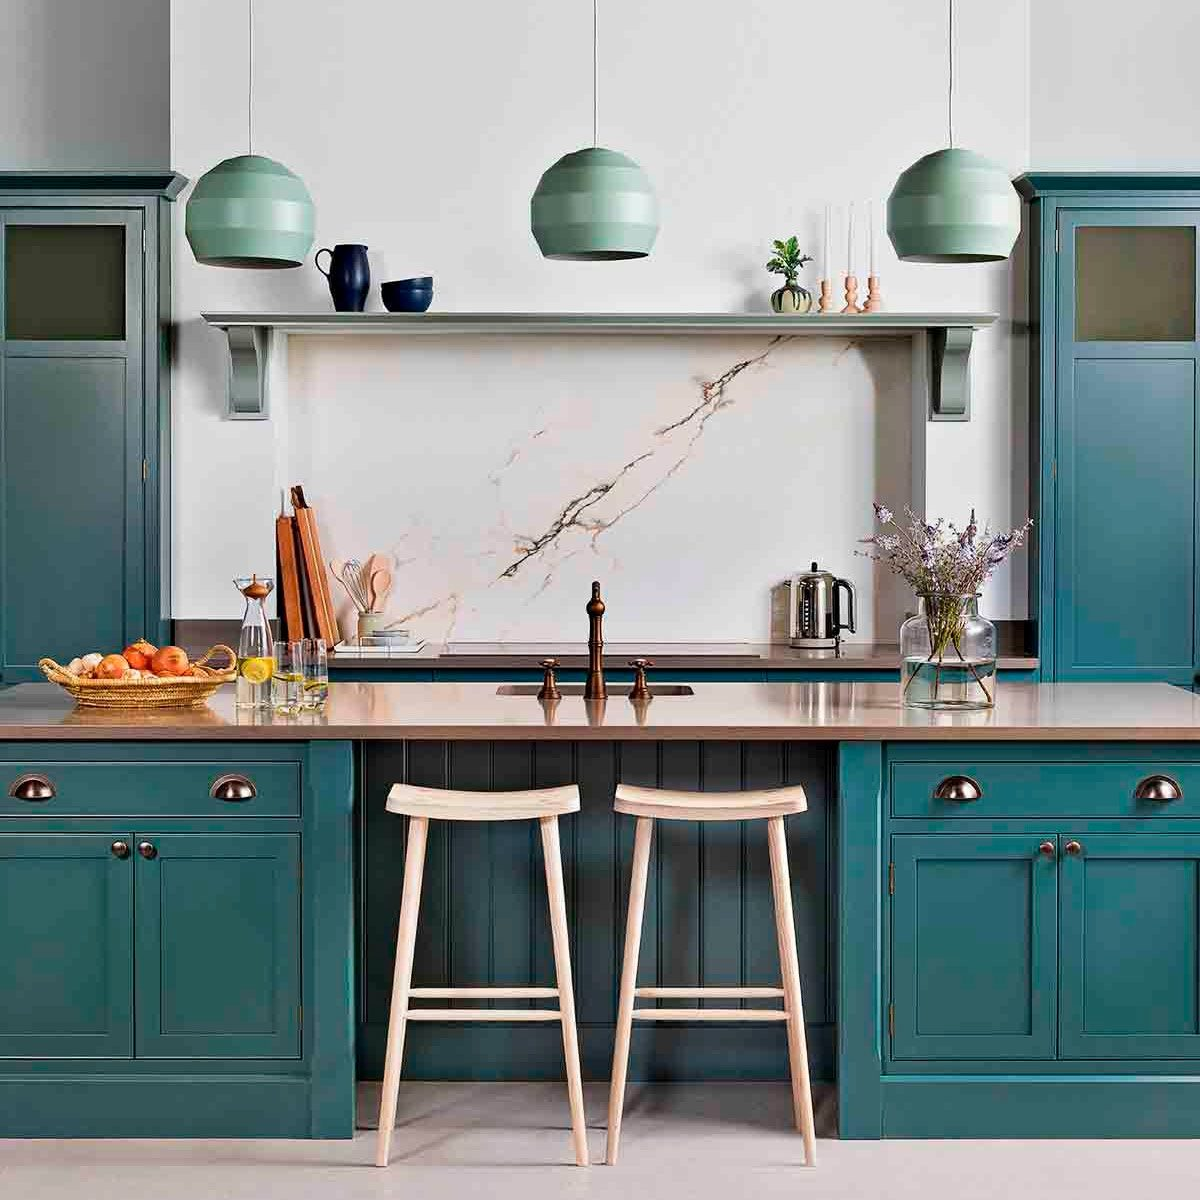 Kitchen Decorating Trends: 5 Kitchen Trends To Avoid In 2019